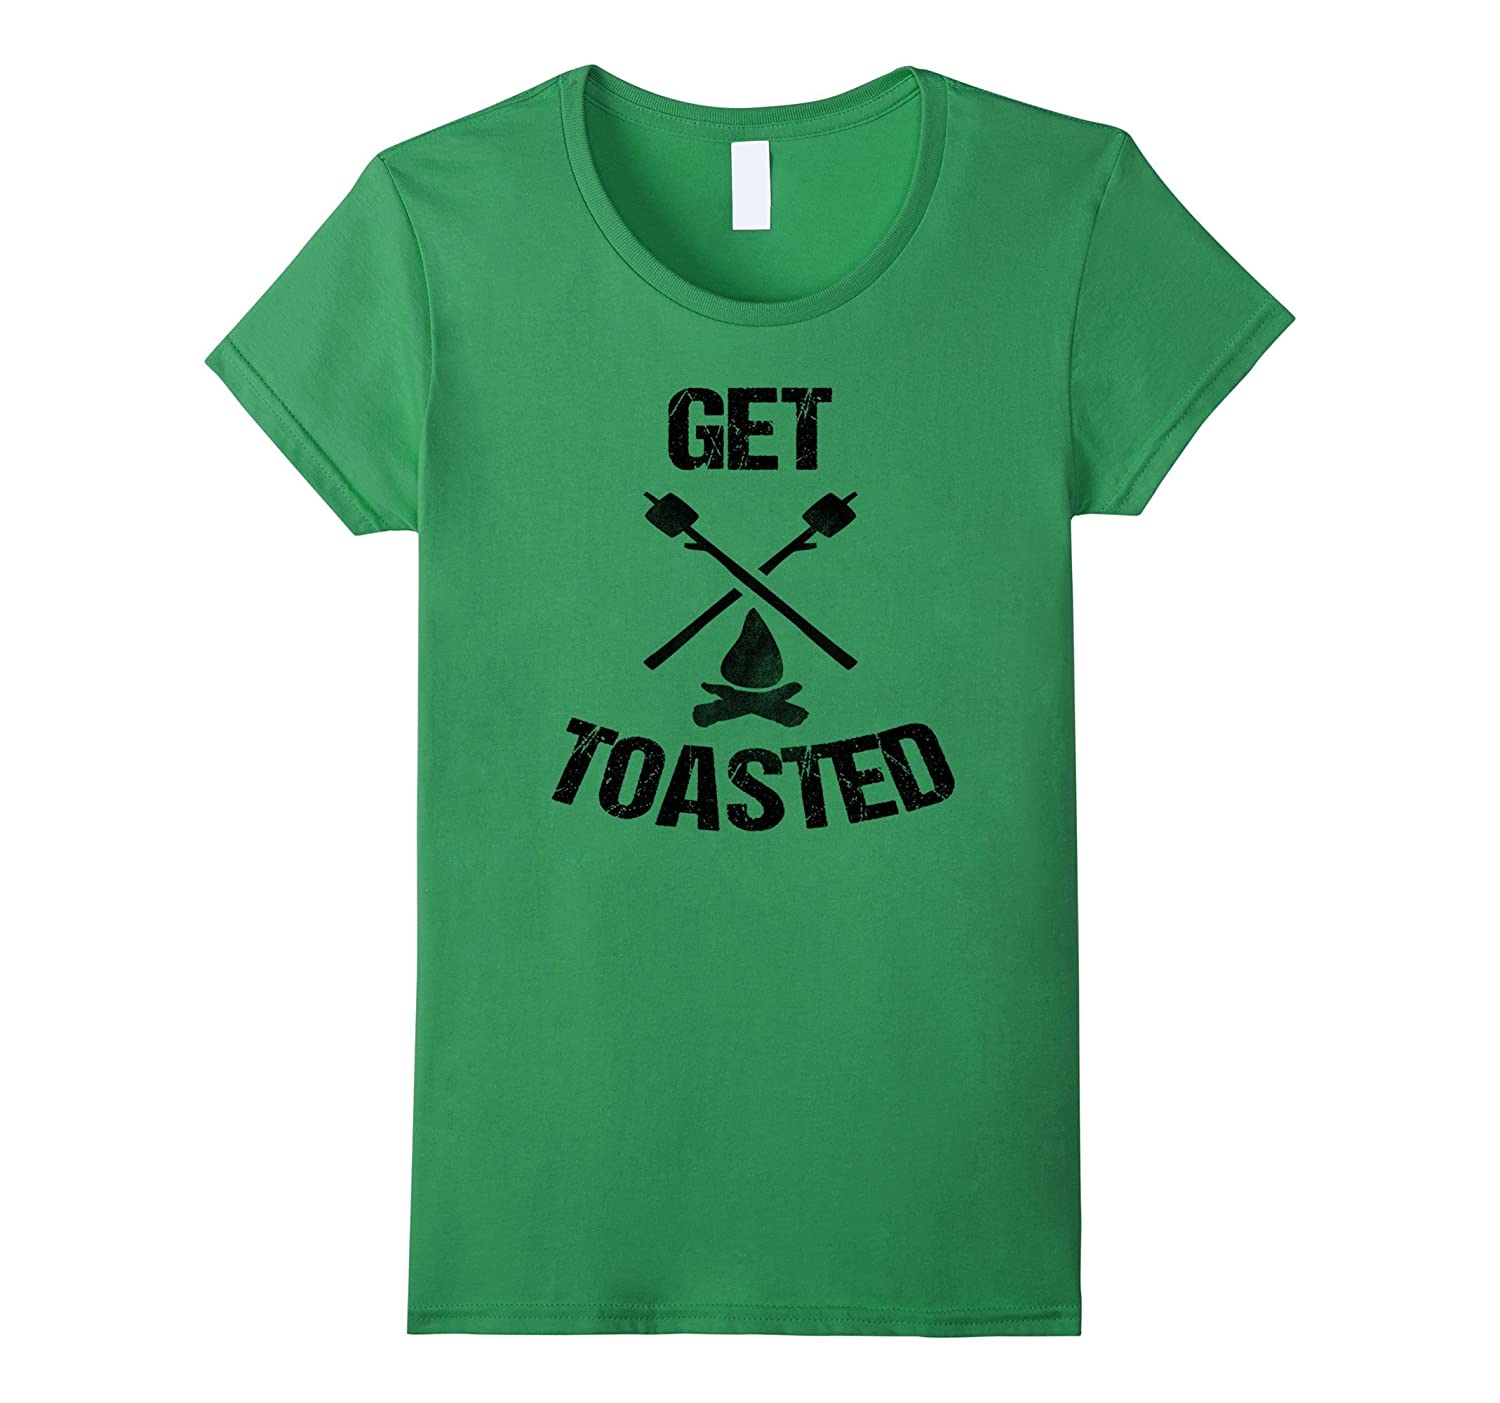 Get Toasted Funny Cool Camping Glamping Campfire T Shirt